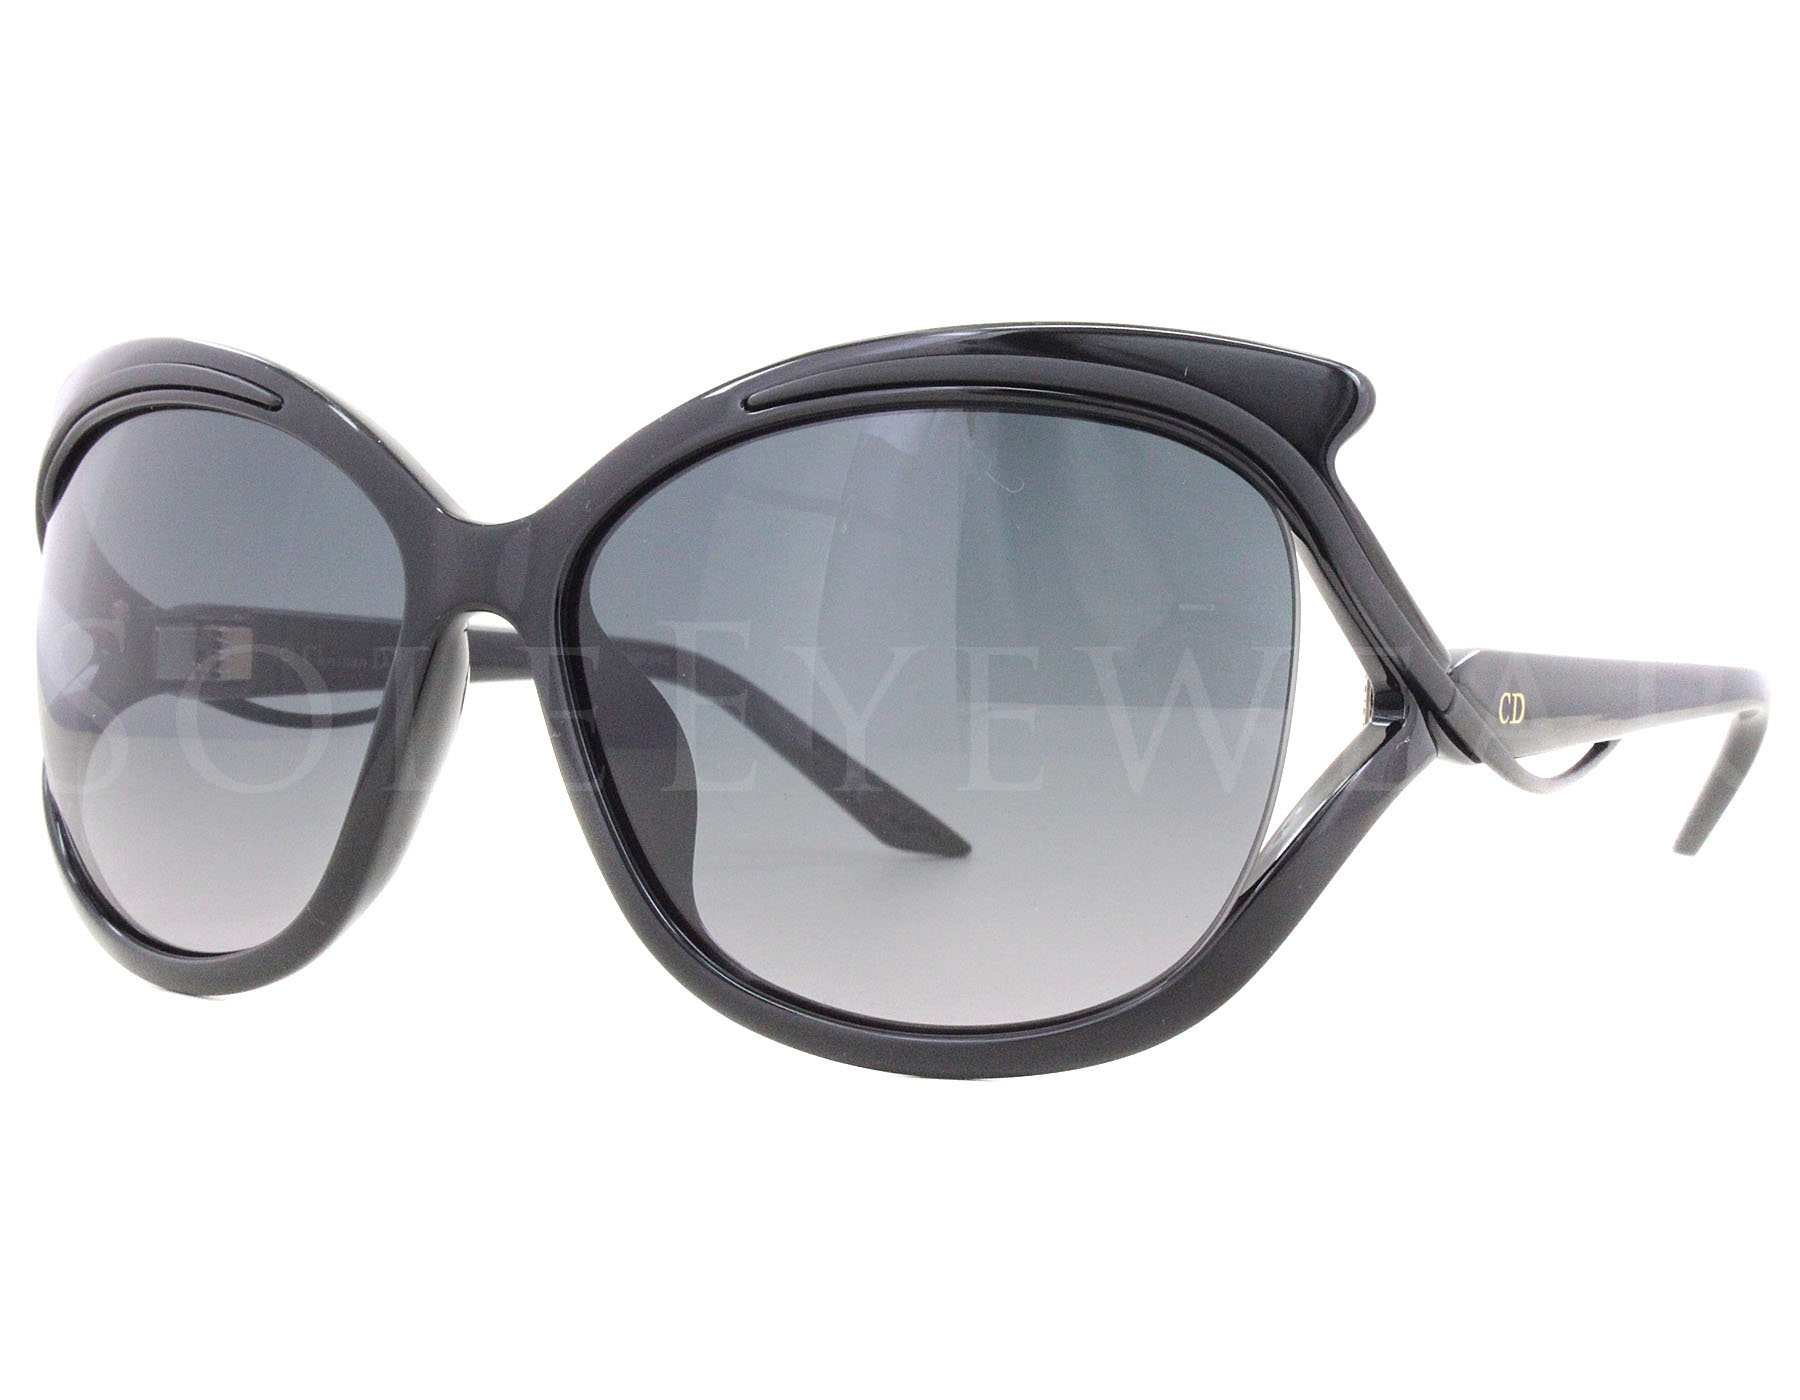 0ce2ee53f8 Details about NEW Christian Dior Audacieuse 2 S 9OKHD 9OK HD Black Grey  Gradient Sunglasses